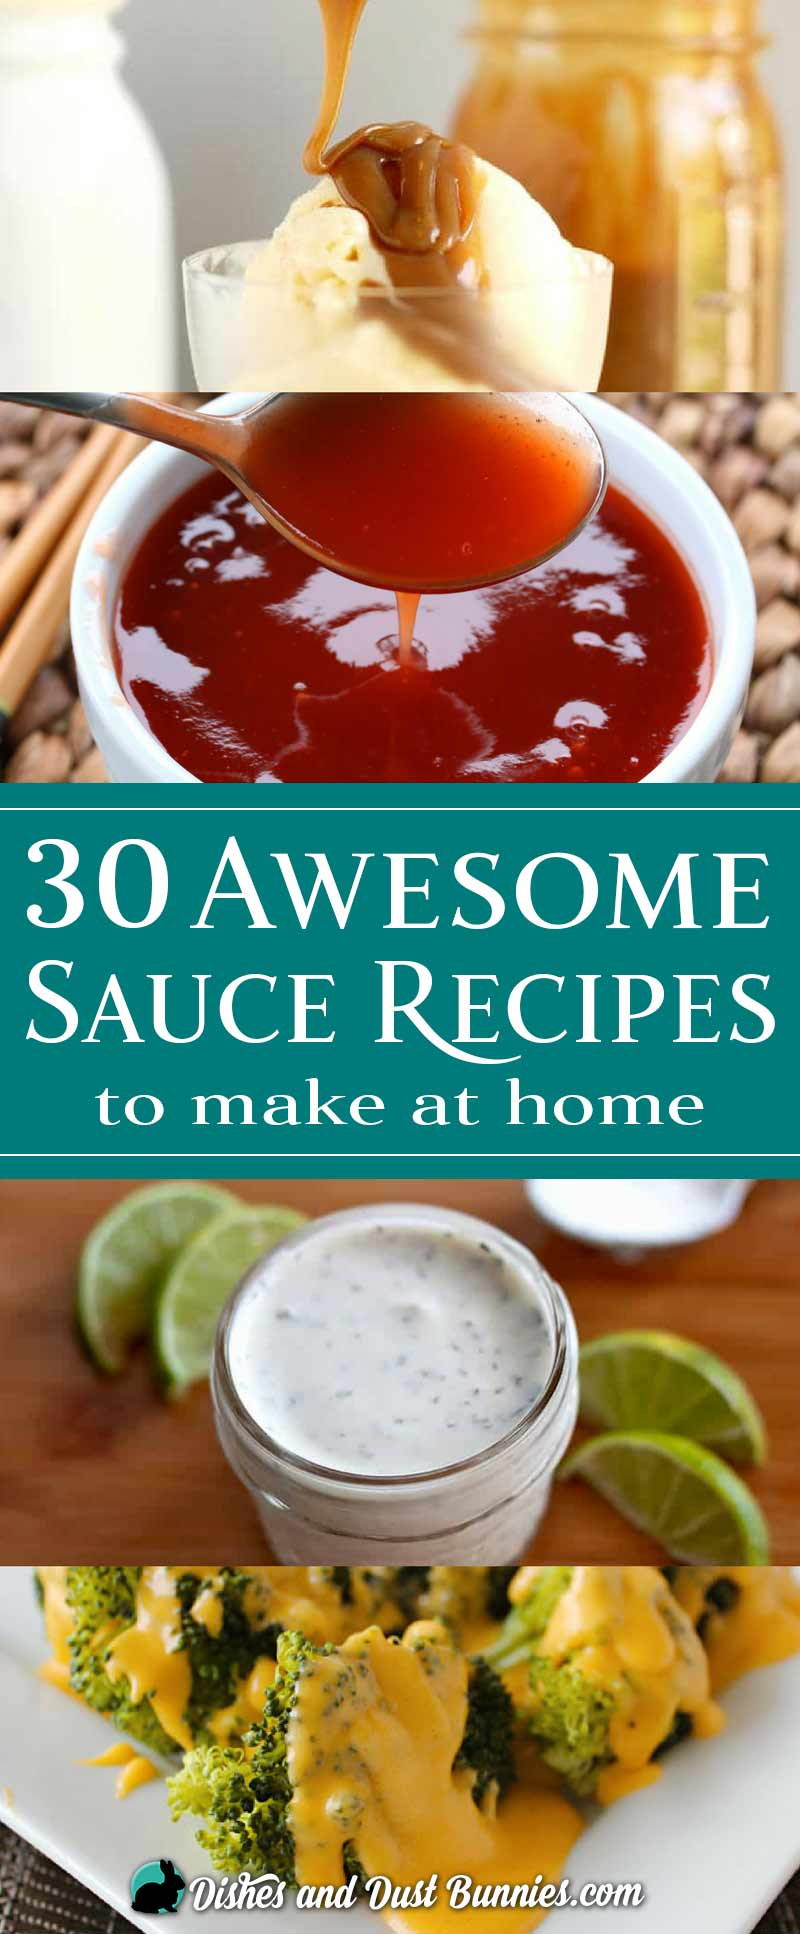 30 Awesome Sauce Recipes to Make at Home from dishesanddustbunnies.com